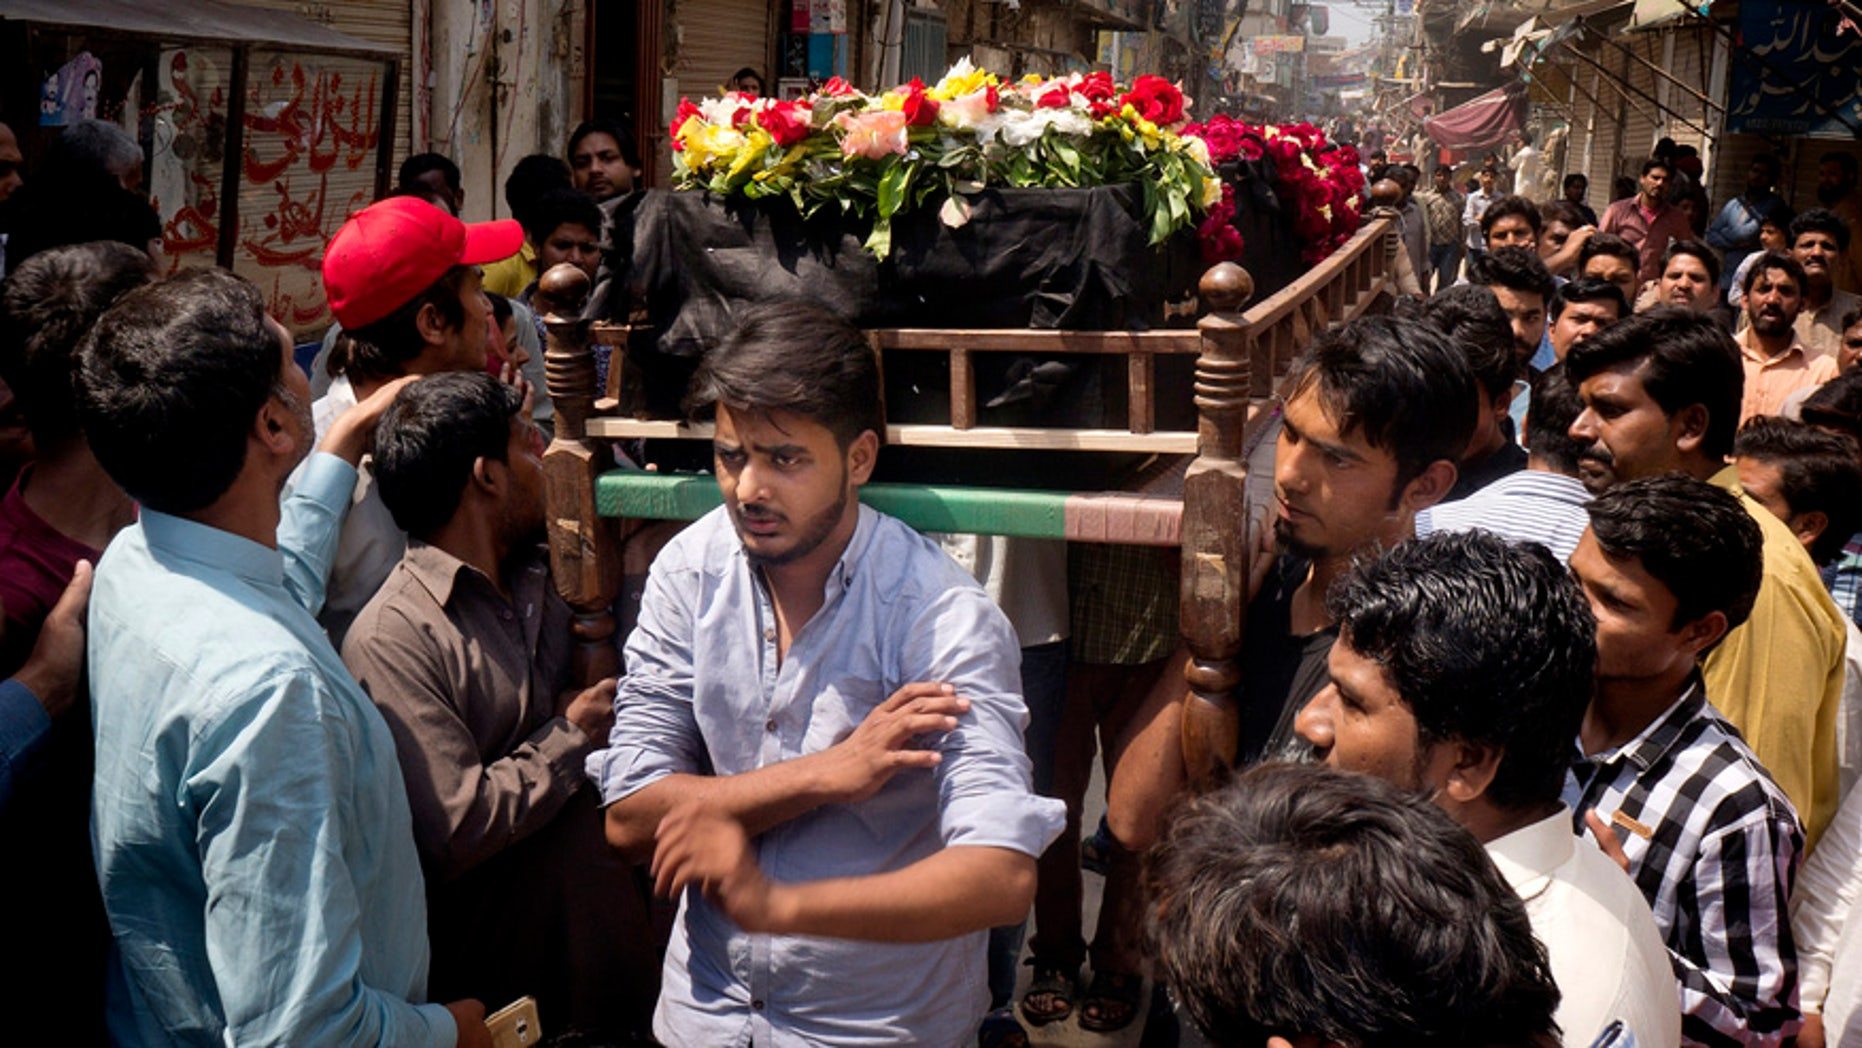 March 28, 2016: People prepare to bury the body of a Christian man killed in a bomb attack in Lahore, Pakistan.